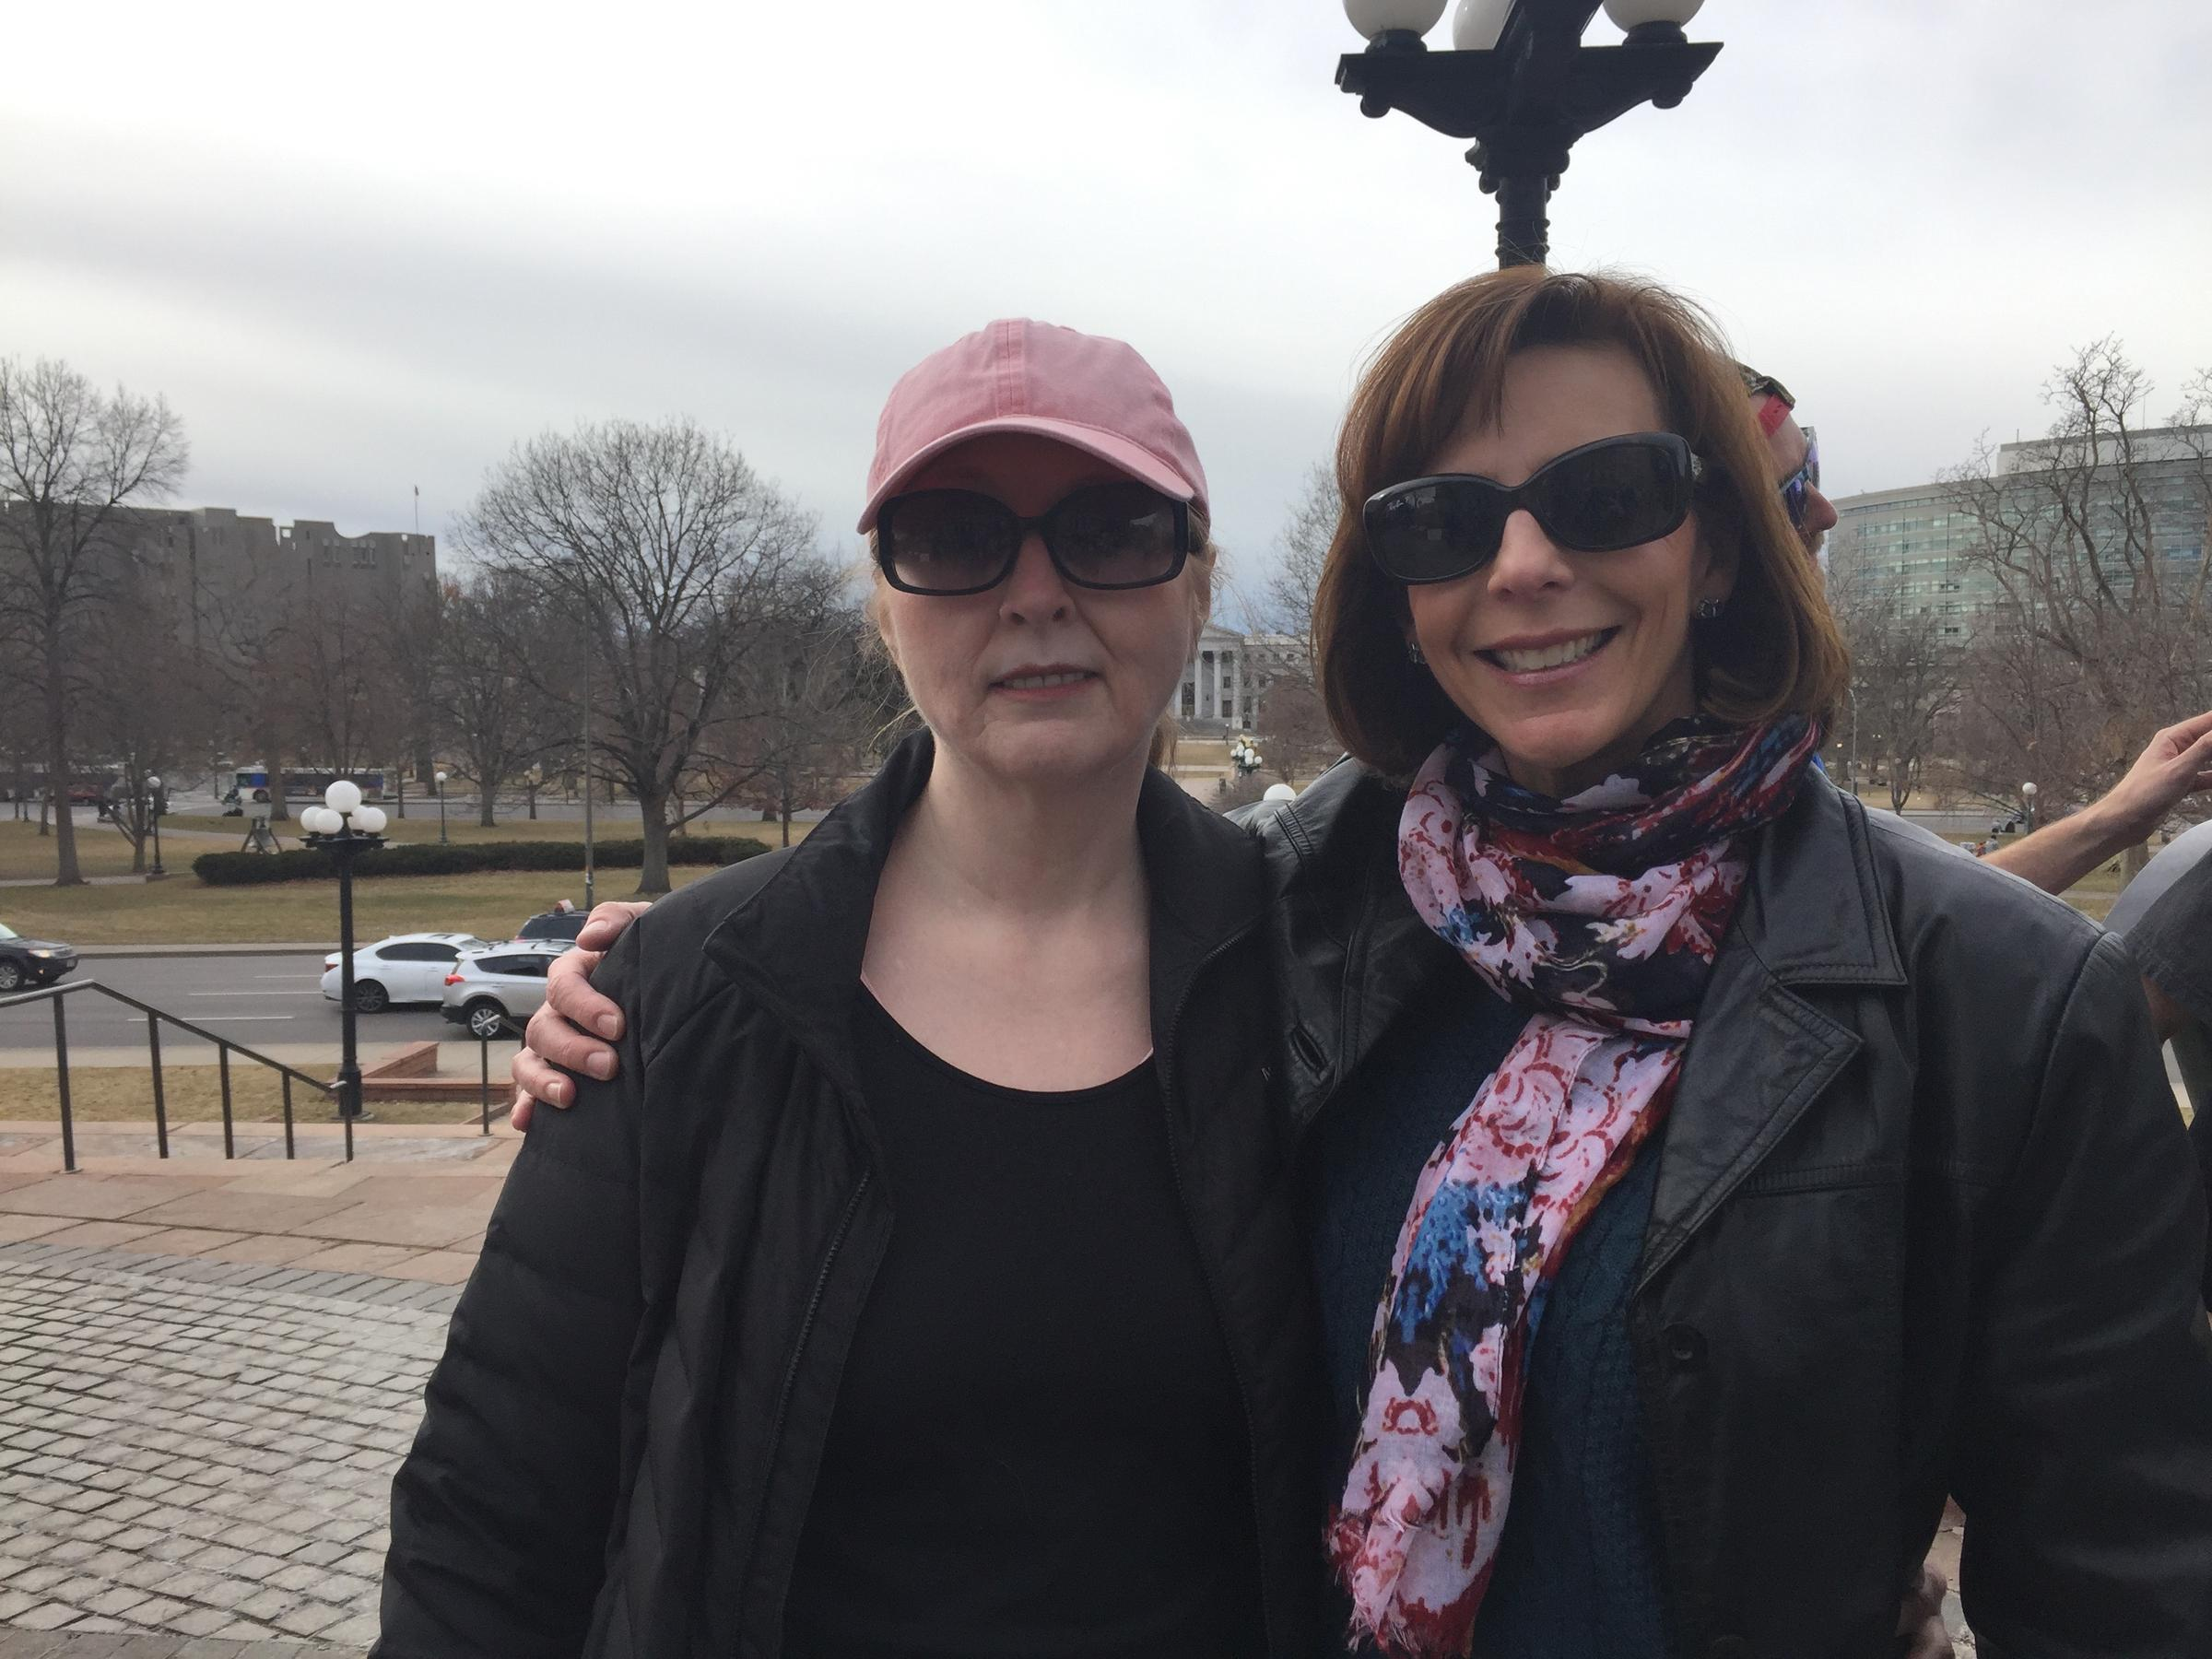 Julie Simons of Broomfield and Kathy Henson of Thornton attended a rally at the state capitol on Tuesday in support of the Affordable Care Act. Both said the law has helped them get more affordable coverage